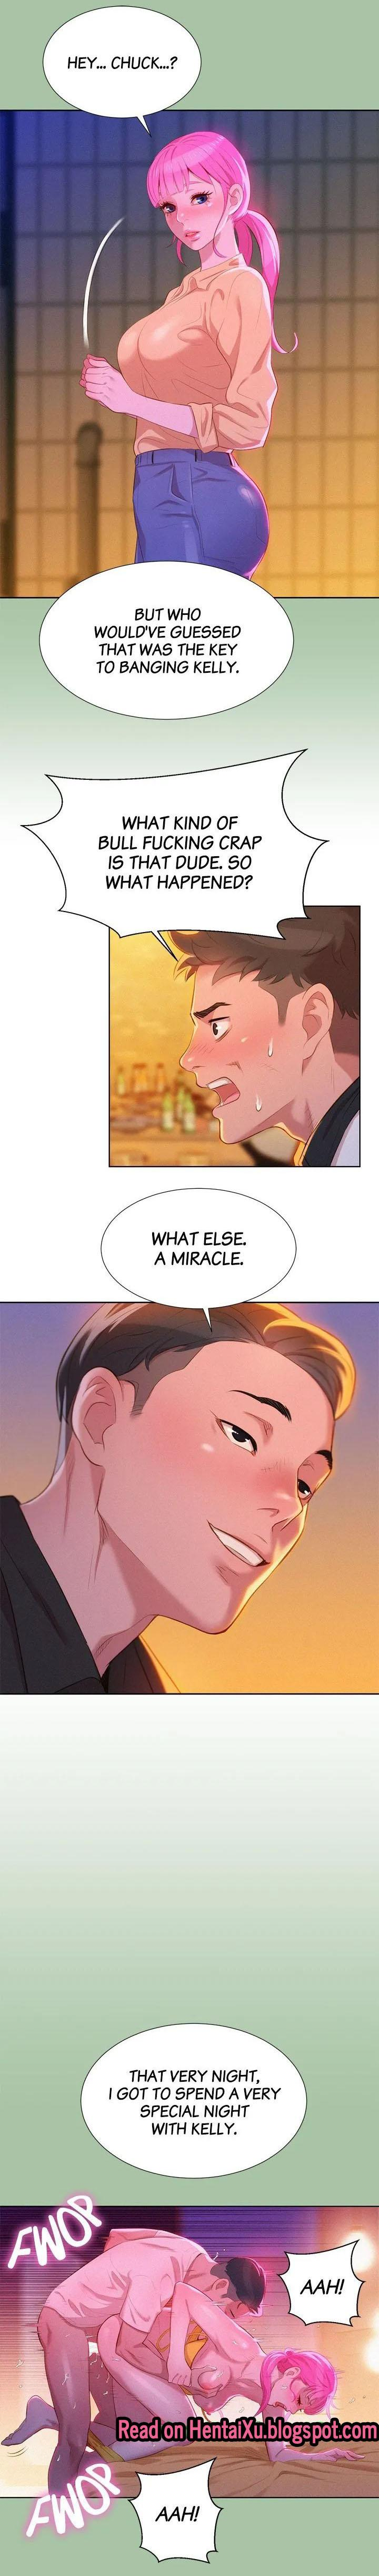 What do you Take me For? Ch.70/? 58